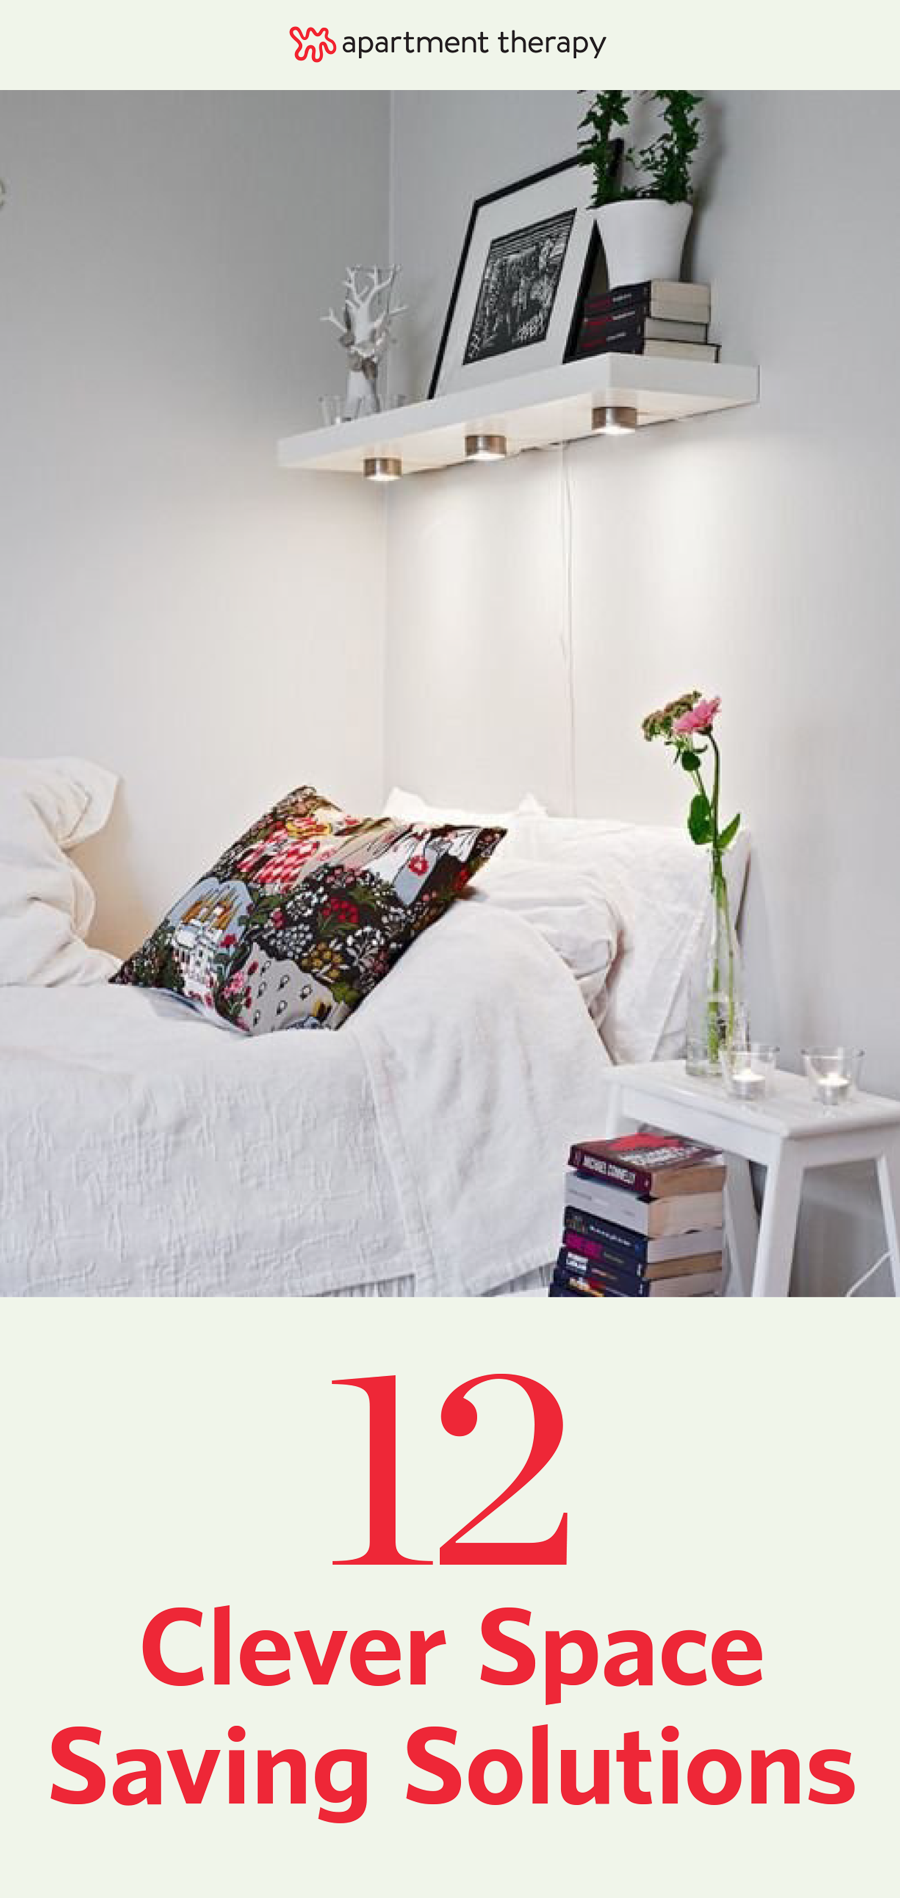 31 Small Space Ideas To Maximize Your Tiny Bedroom: 8 Storage Solutions To Maximize Your Hidden Bedroom Space